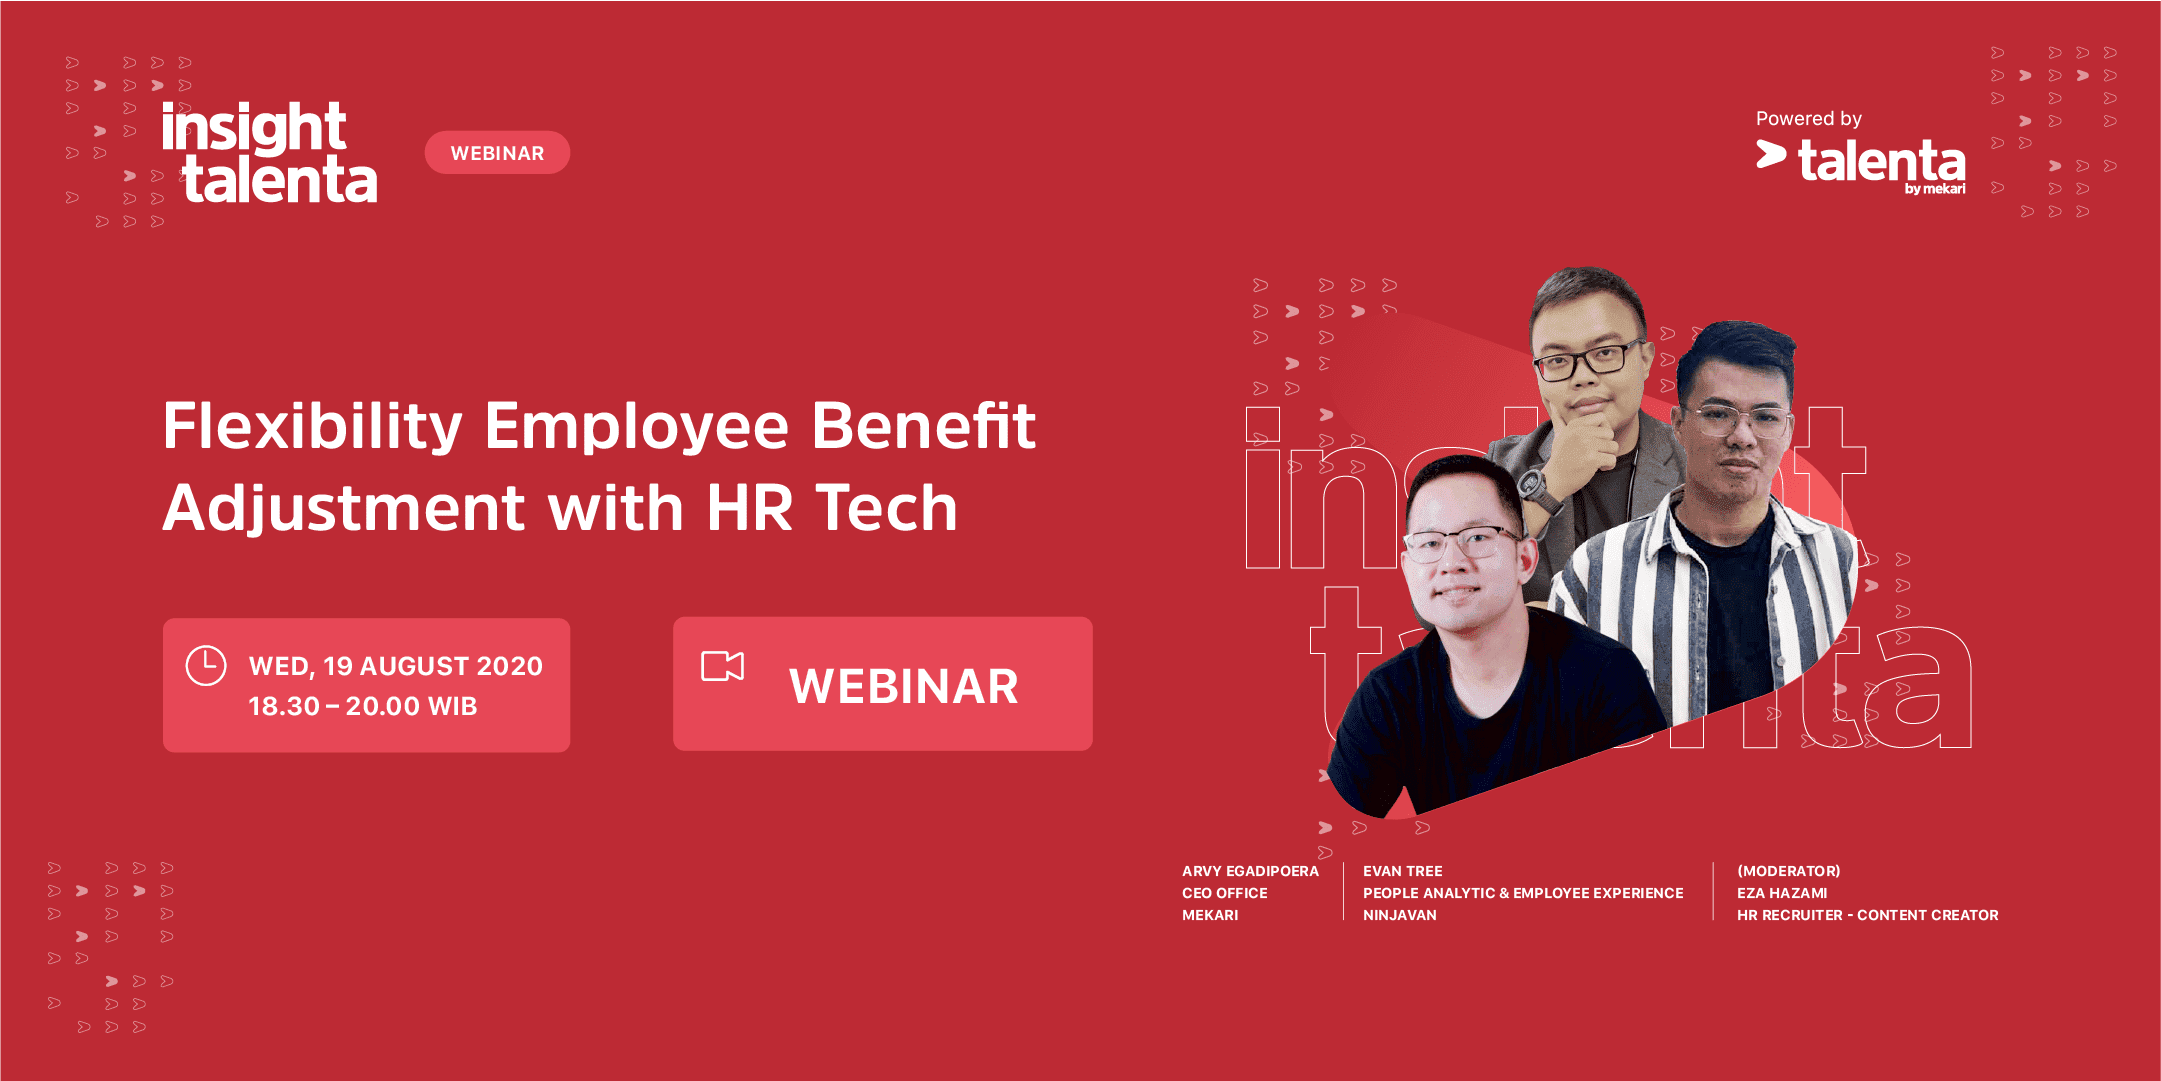 Insight Talenta Simplify The Management of Employee Benefit with HR Tech